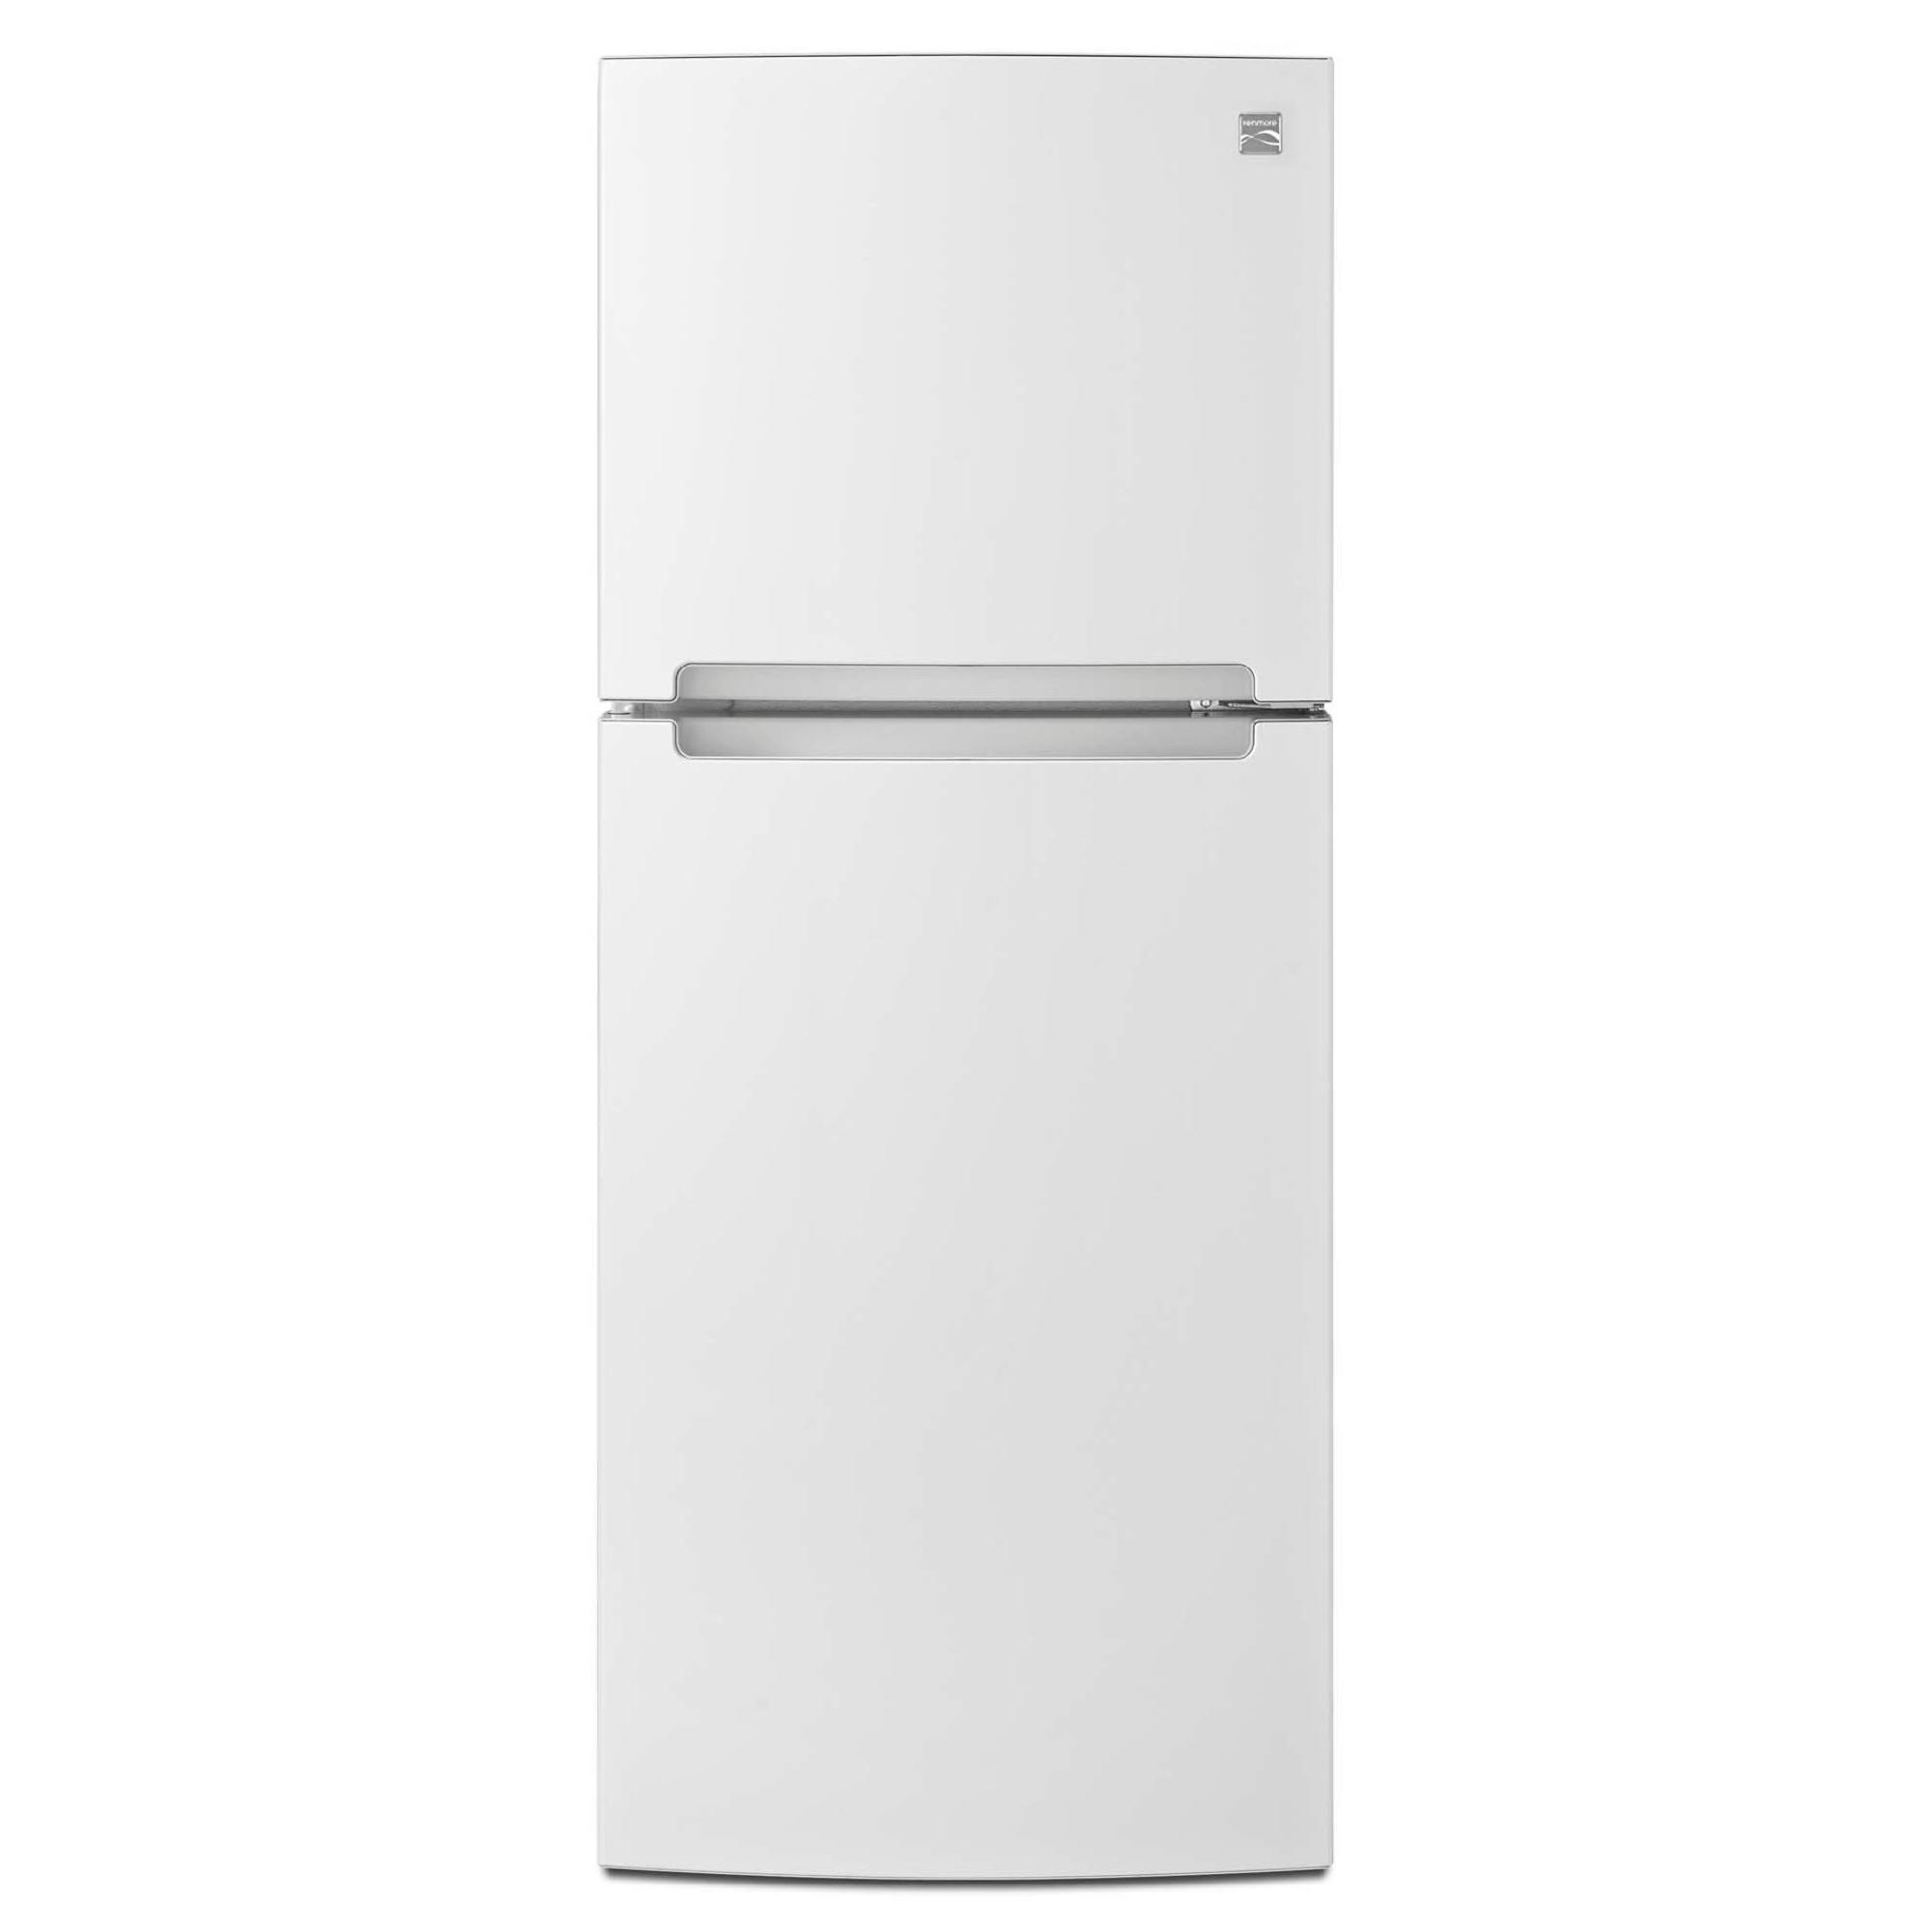 76392-10-7-cu-ft-Top-Freezer-Refrigerator-w-Humidity-Controlled-Crisper-White